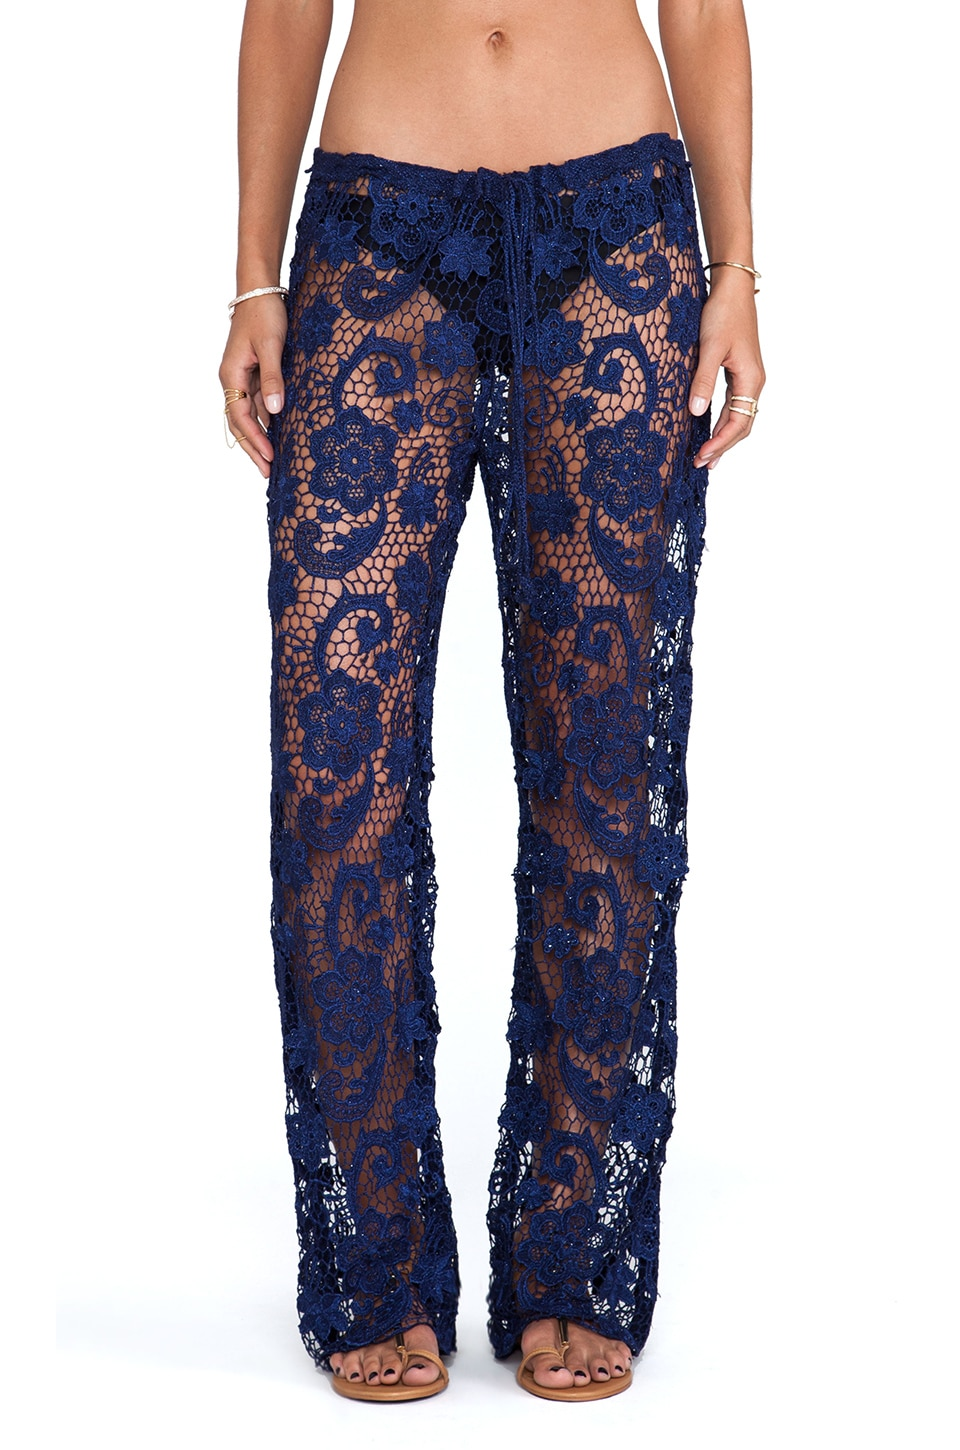 Lisa Maree Nine Lives Crochet Lace Pant in Navy